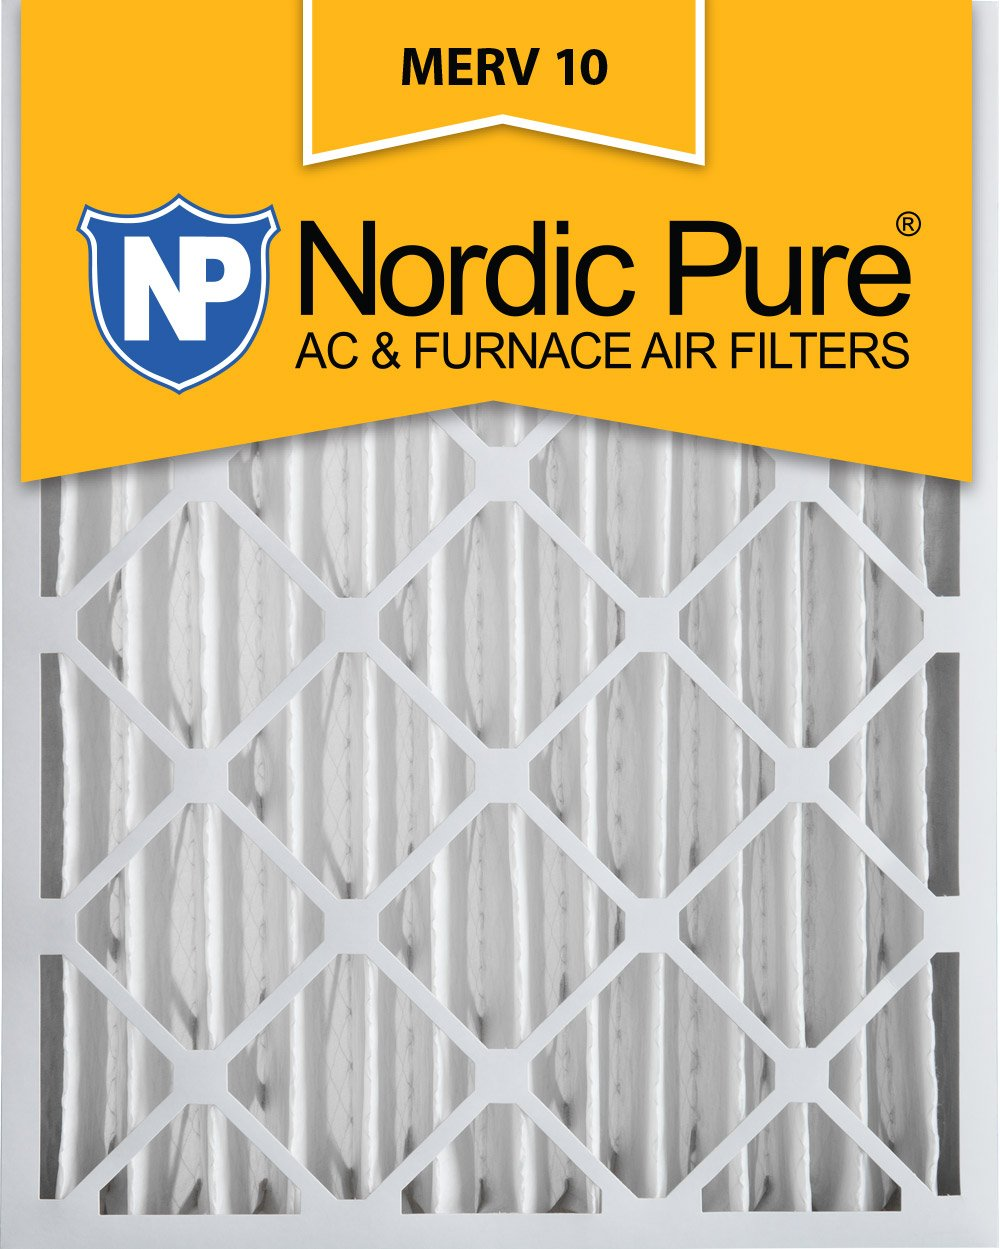 Nordic Pure 20x24x4 MERV 10 Pleated AC Furnace Air Filter, Box of 1 by Nordic Pure B006NWOIZW